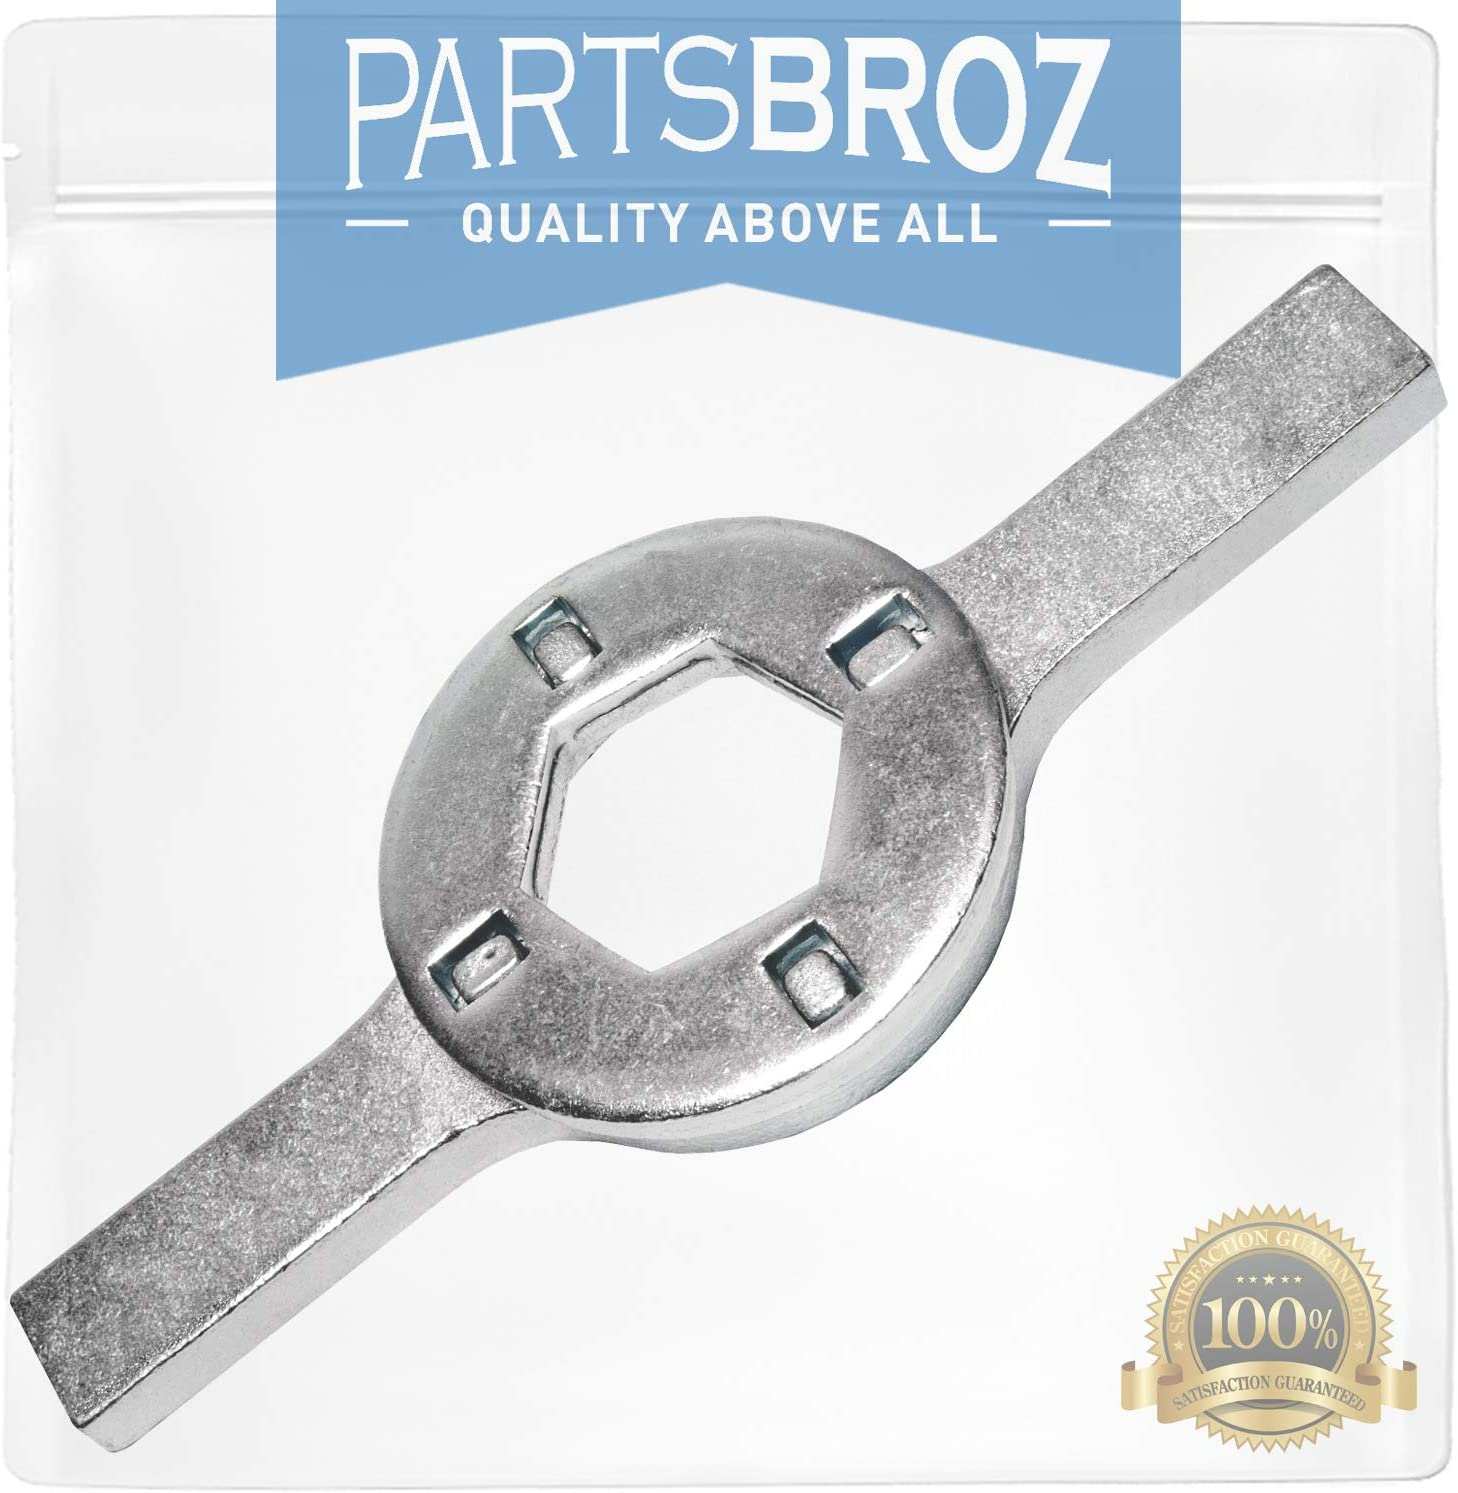 TB123A Spanner Wrench by PartsBroz - Compatible with Maytag Washing Machines - Replaces TB123B, AP6832671, TJ90TB123A, 12393, 123931, 41-123, ERTB123A, OVR23A & TB123